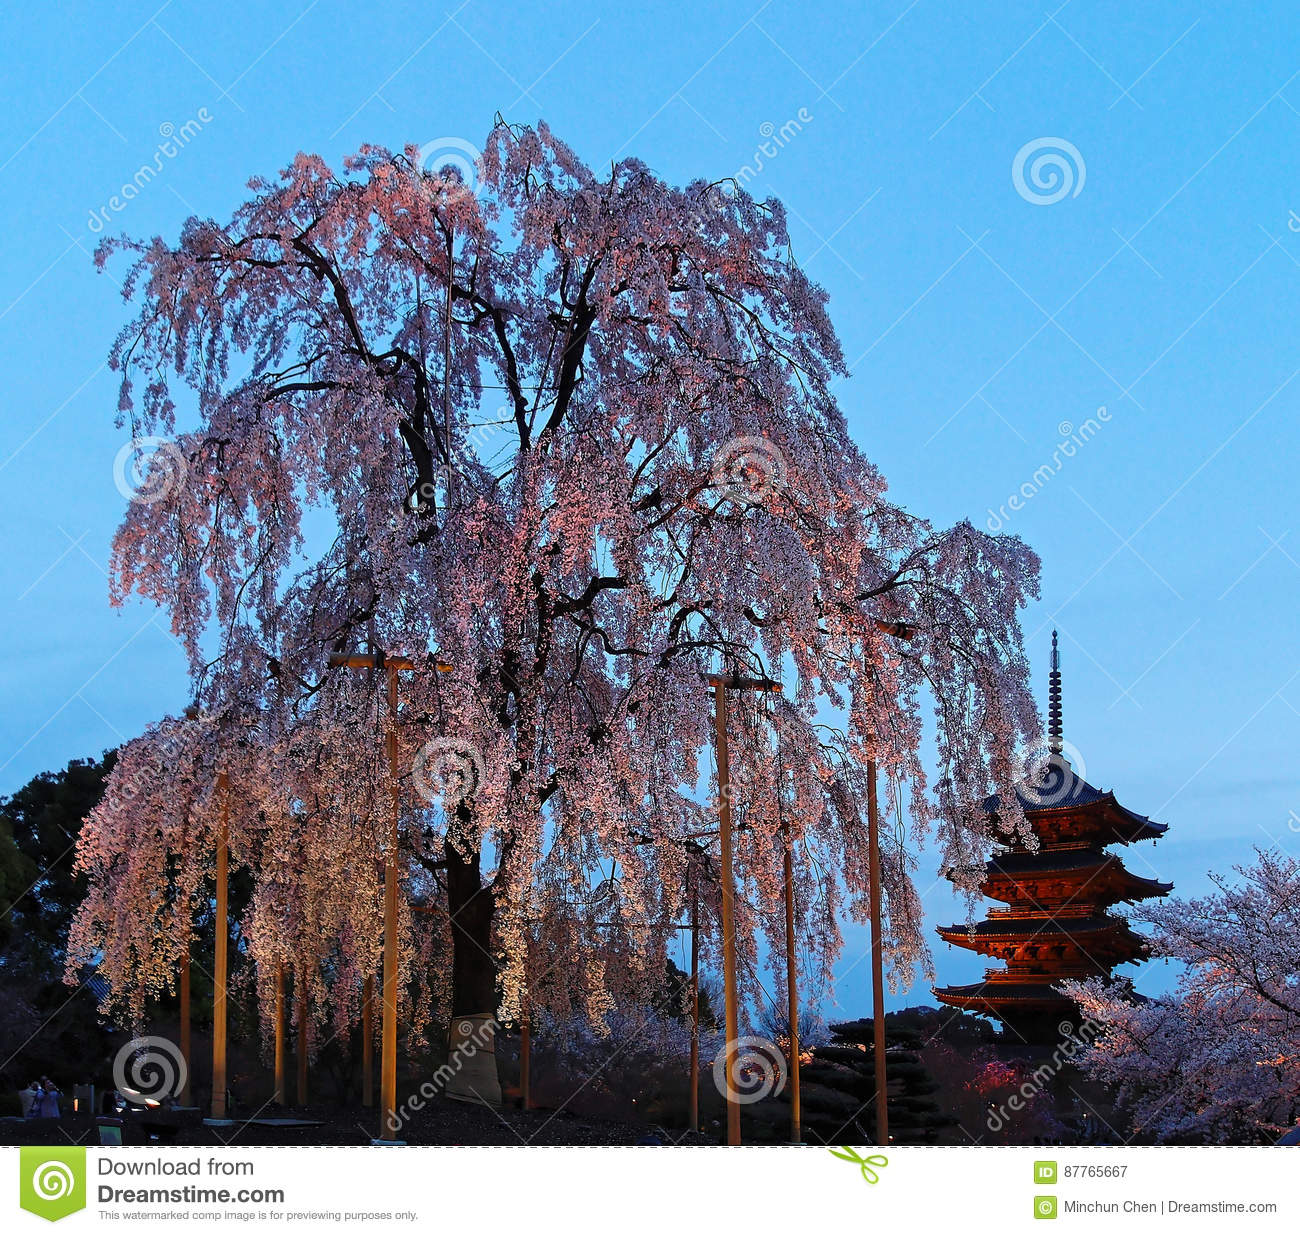 Night view of the famous Five-Story Pagoda of Toji Temple and blossoms of a giant sakura tree in Kyoto Japan